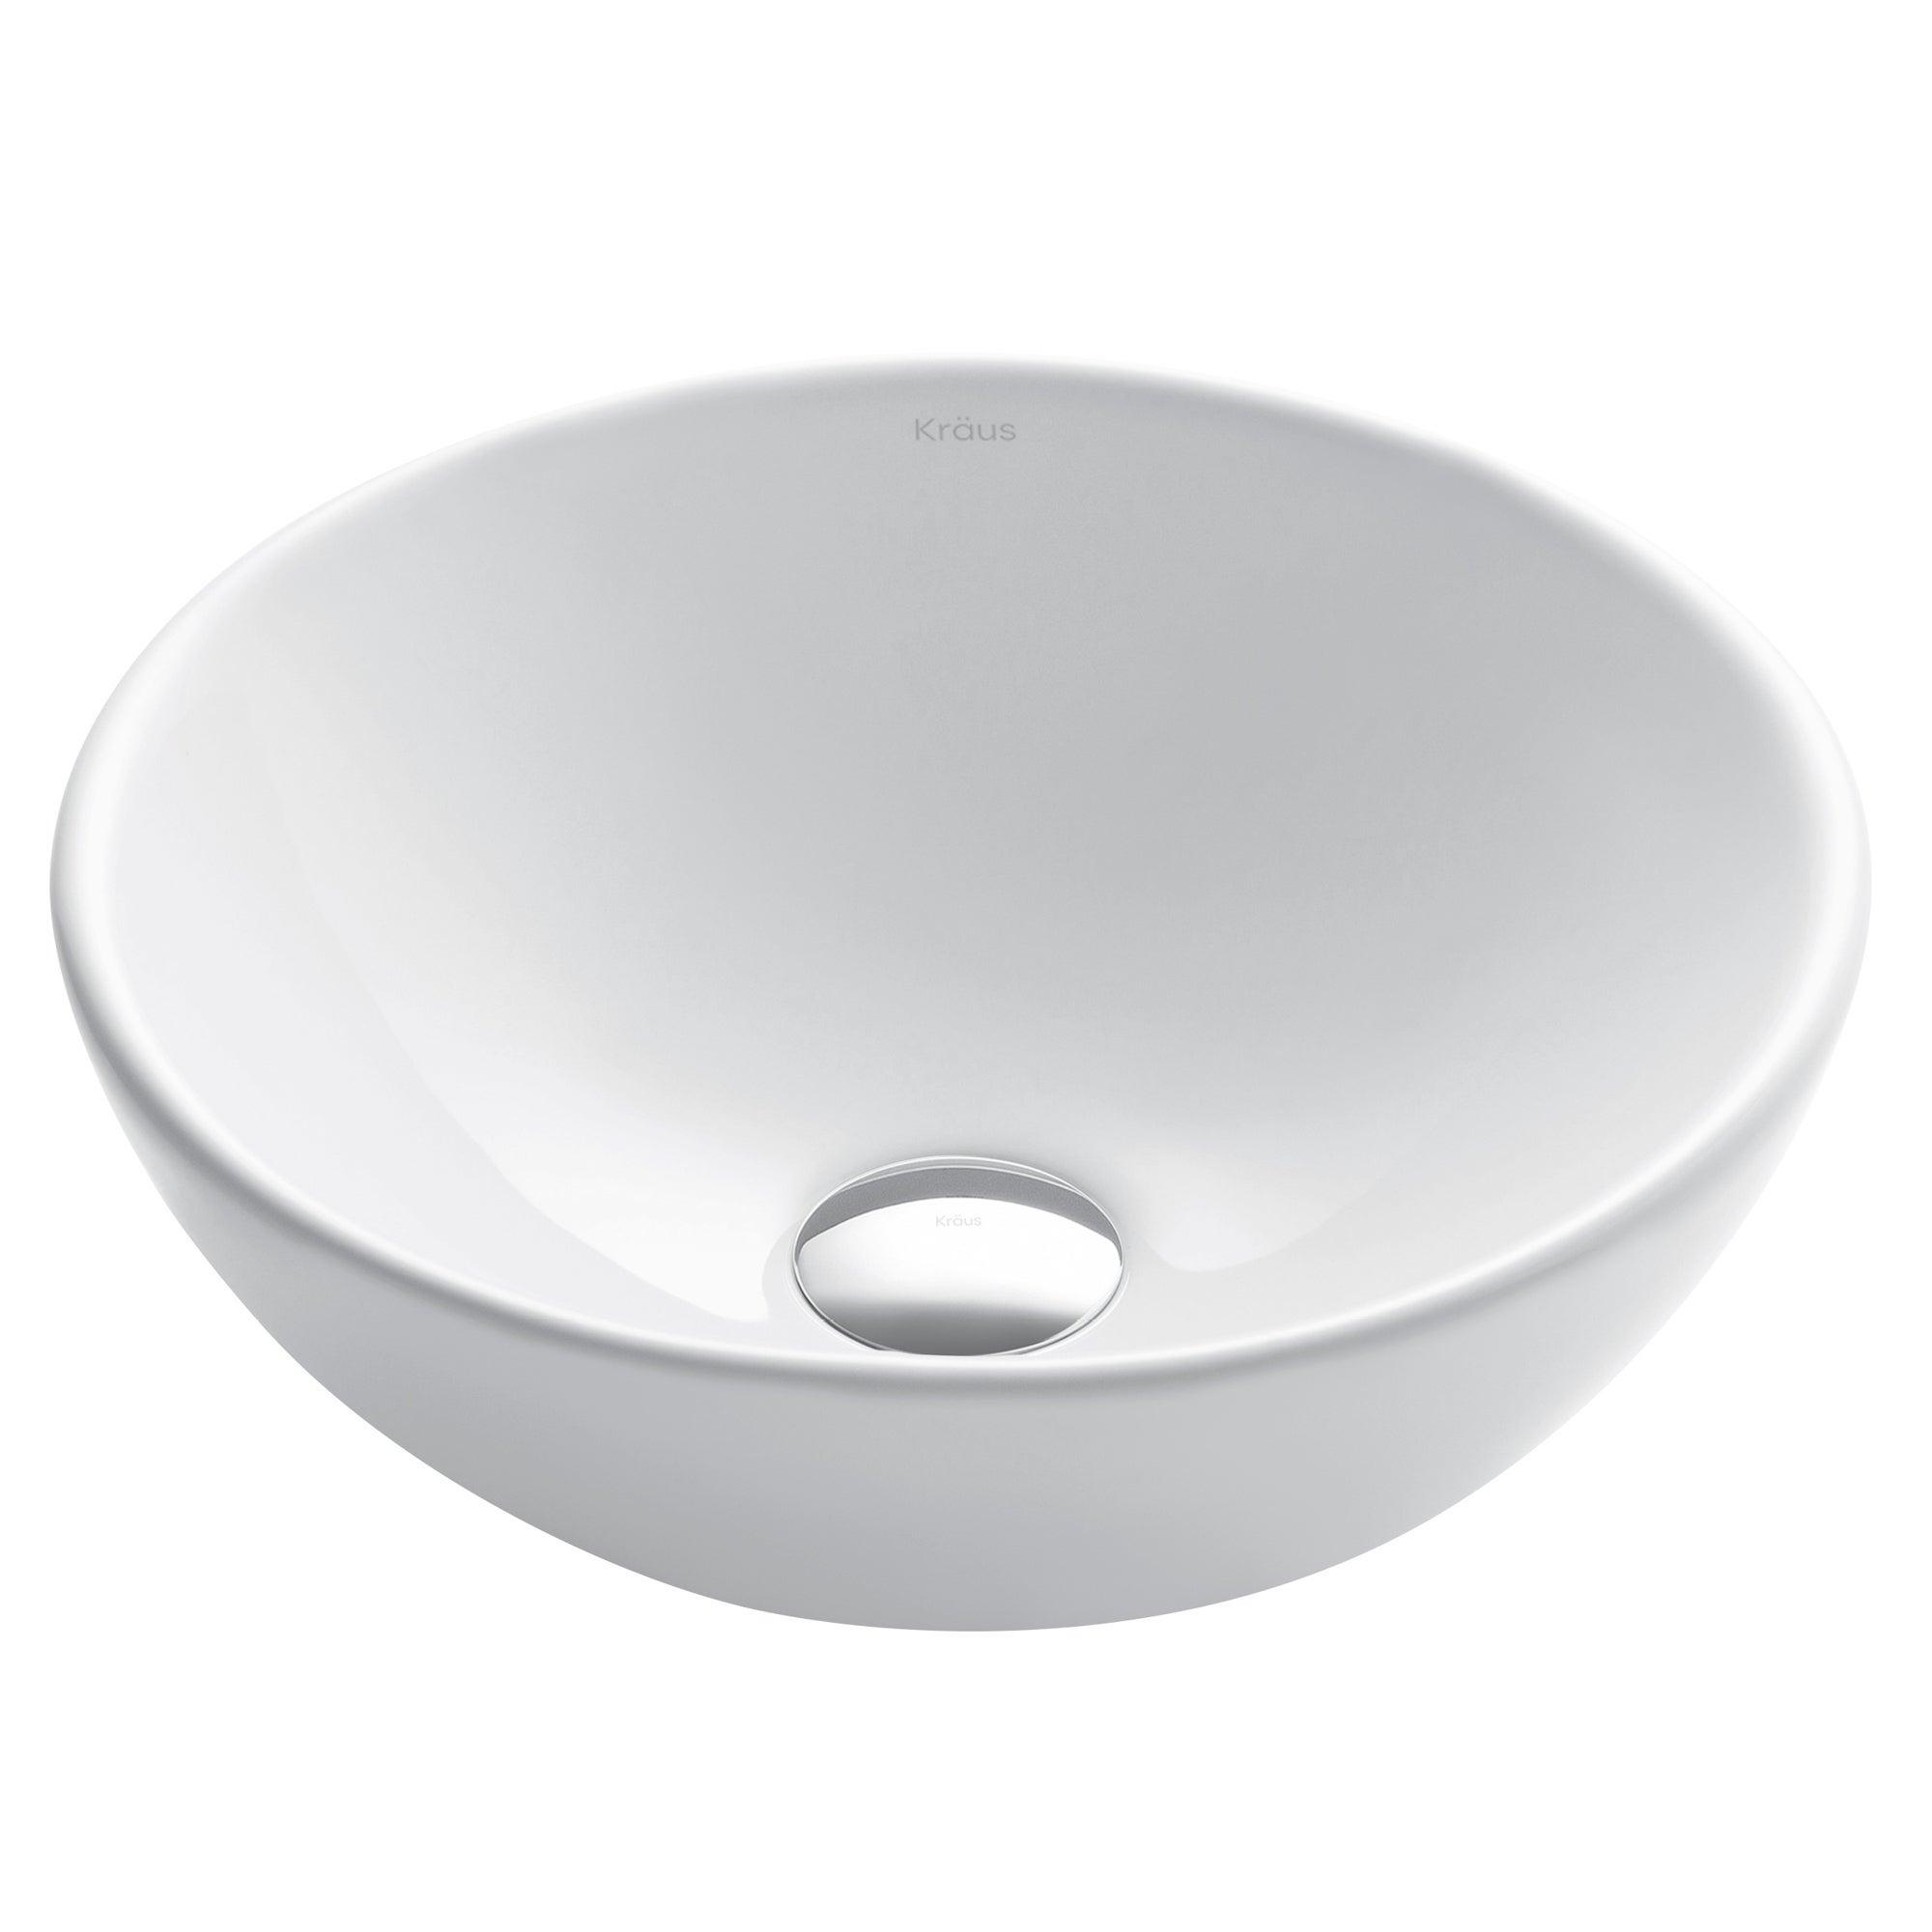 Kraus Kcv 341 Elavo 13 4 5 Inch Small Round Vessel Porcelain Ceramic Vitreous Bathroom Sink In White